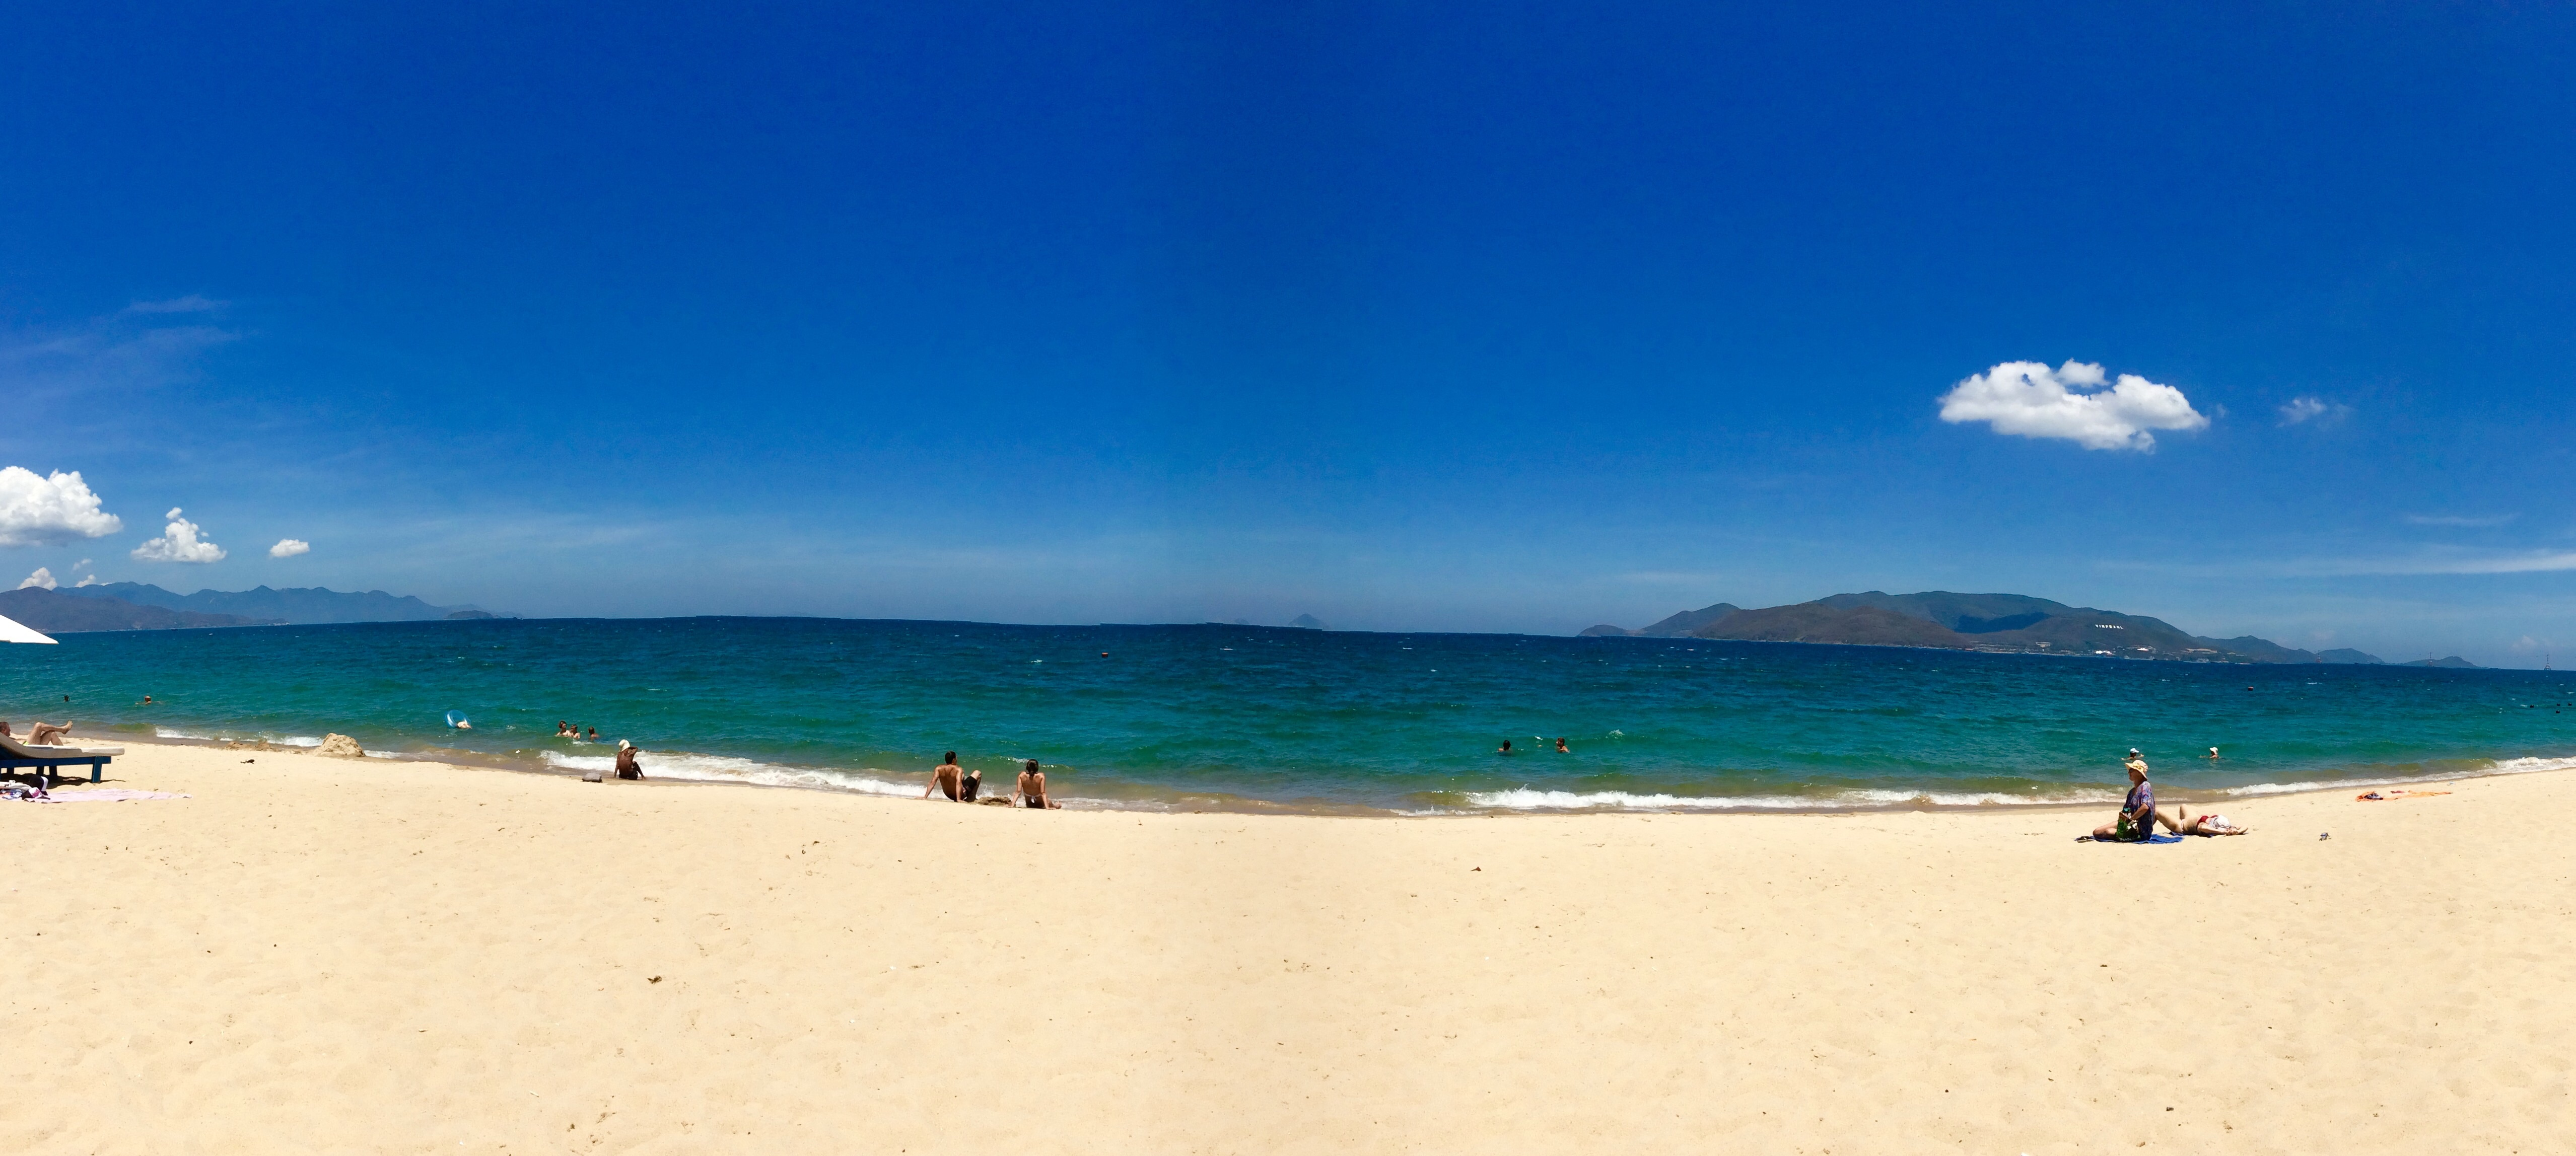 A panoramic view of Nha Trang Beach